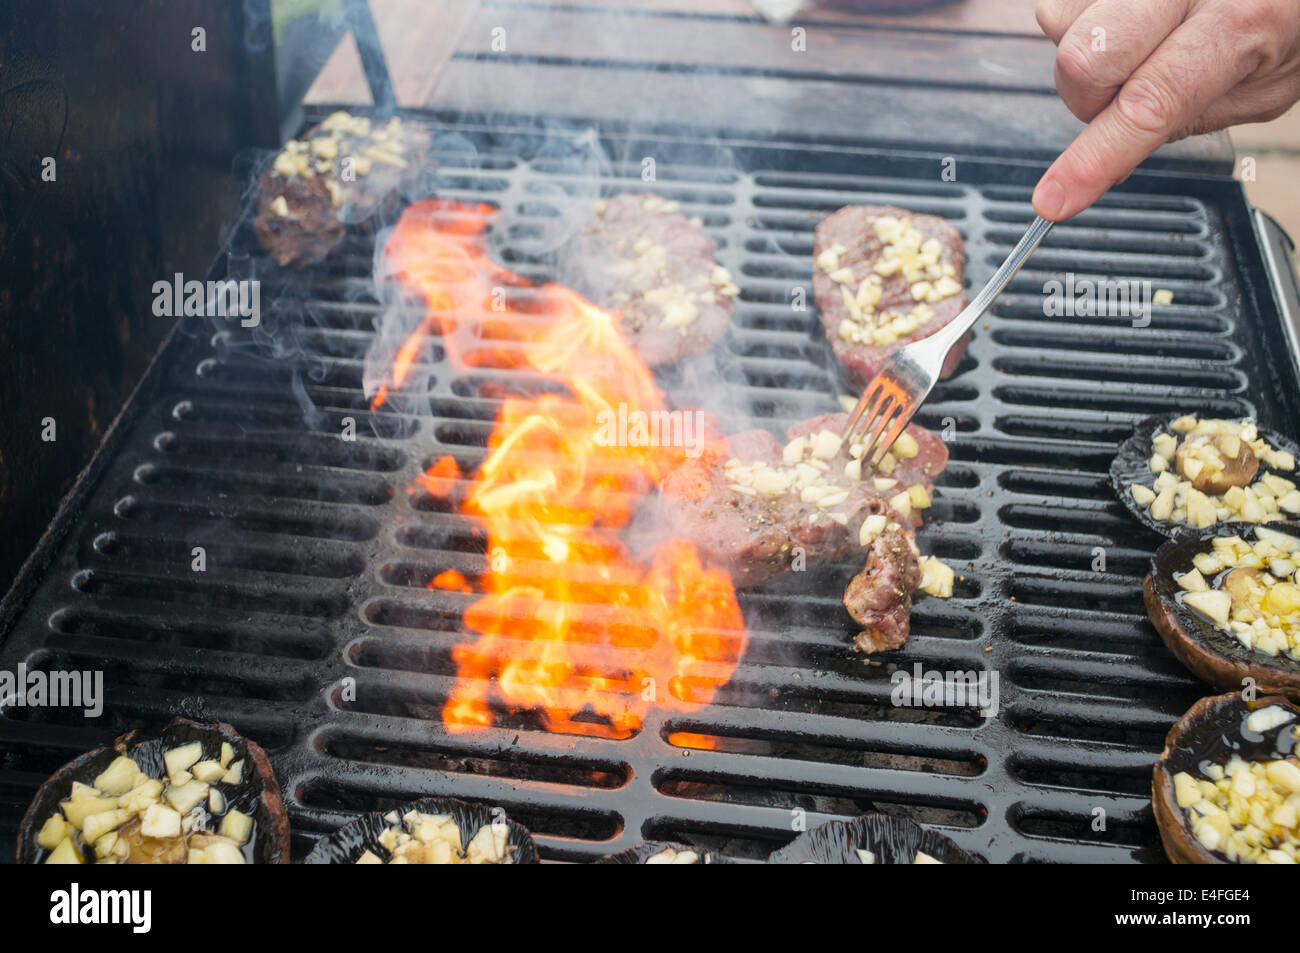 man-barbecuing-steak-and-mushrooms-with-